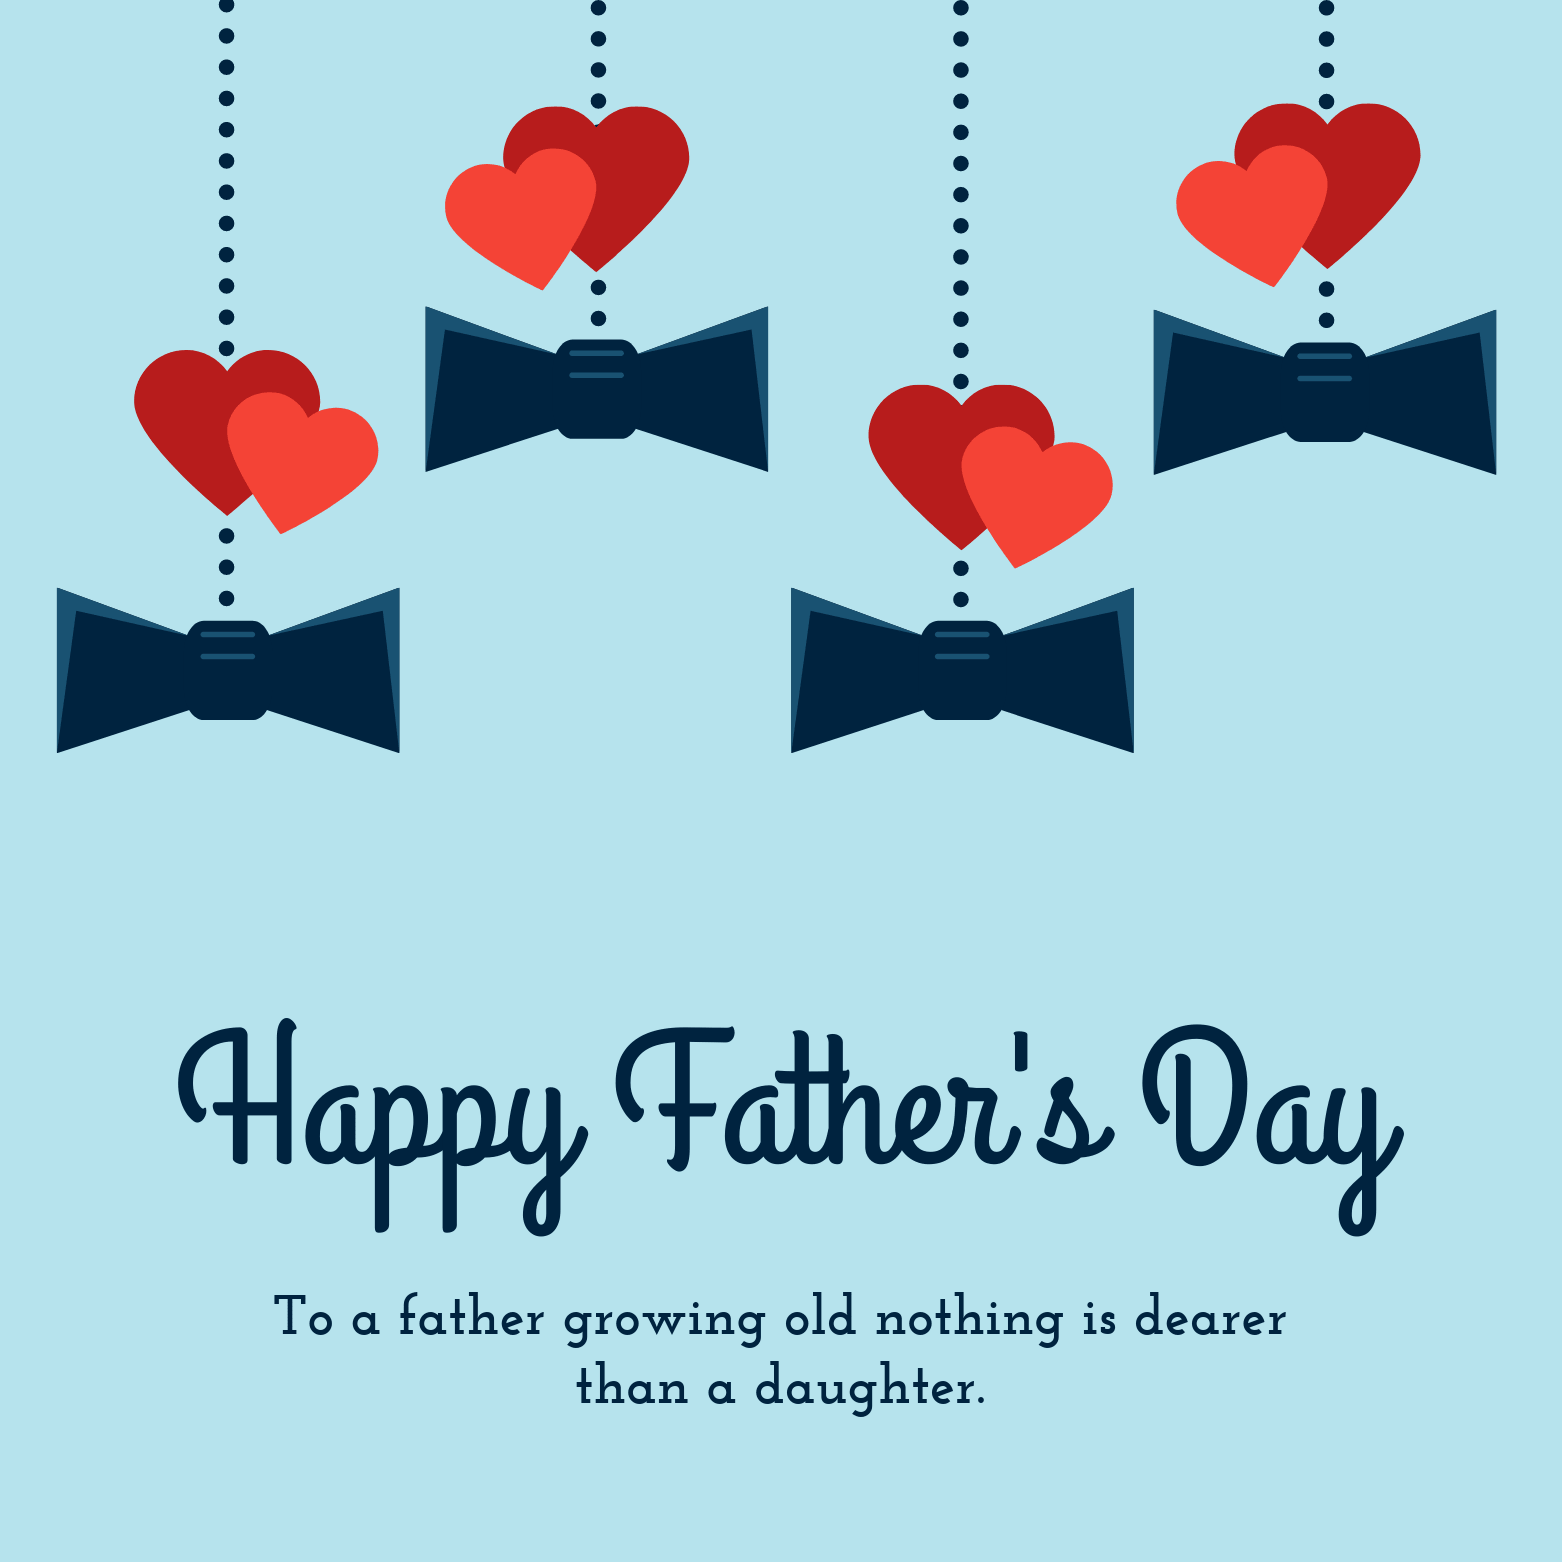 With Love DAD on FATHER/'S DAY card Quality Fathers Day With You in Mind Design